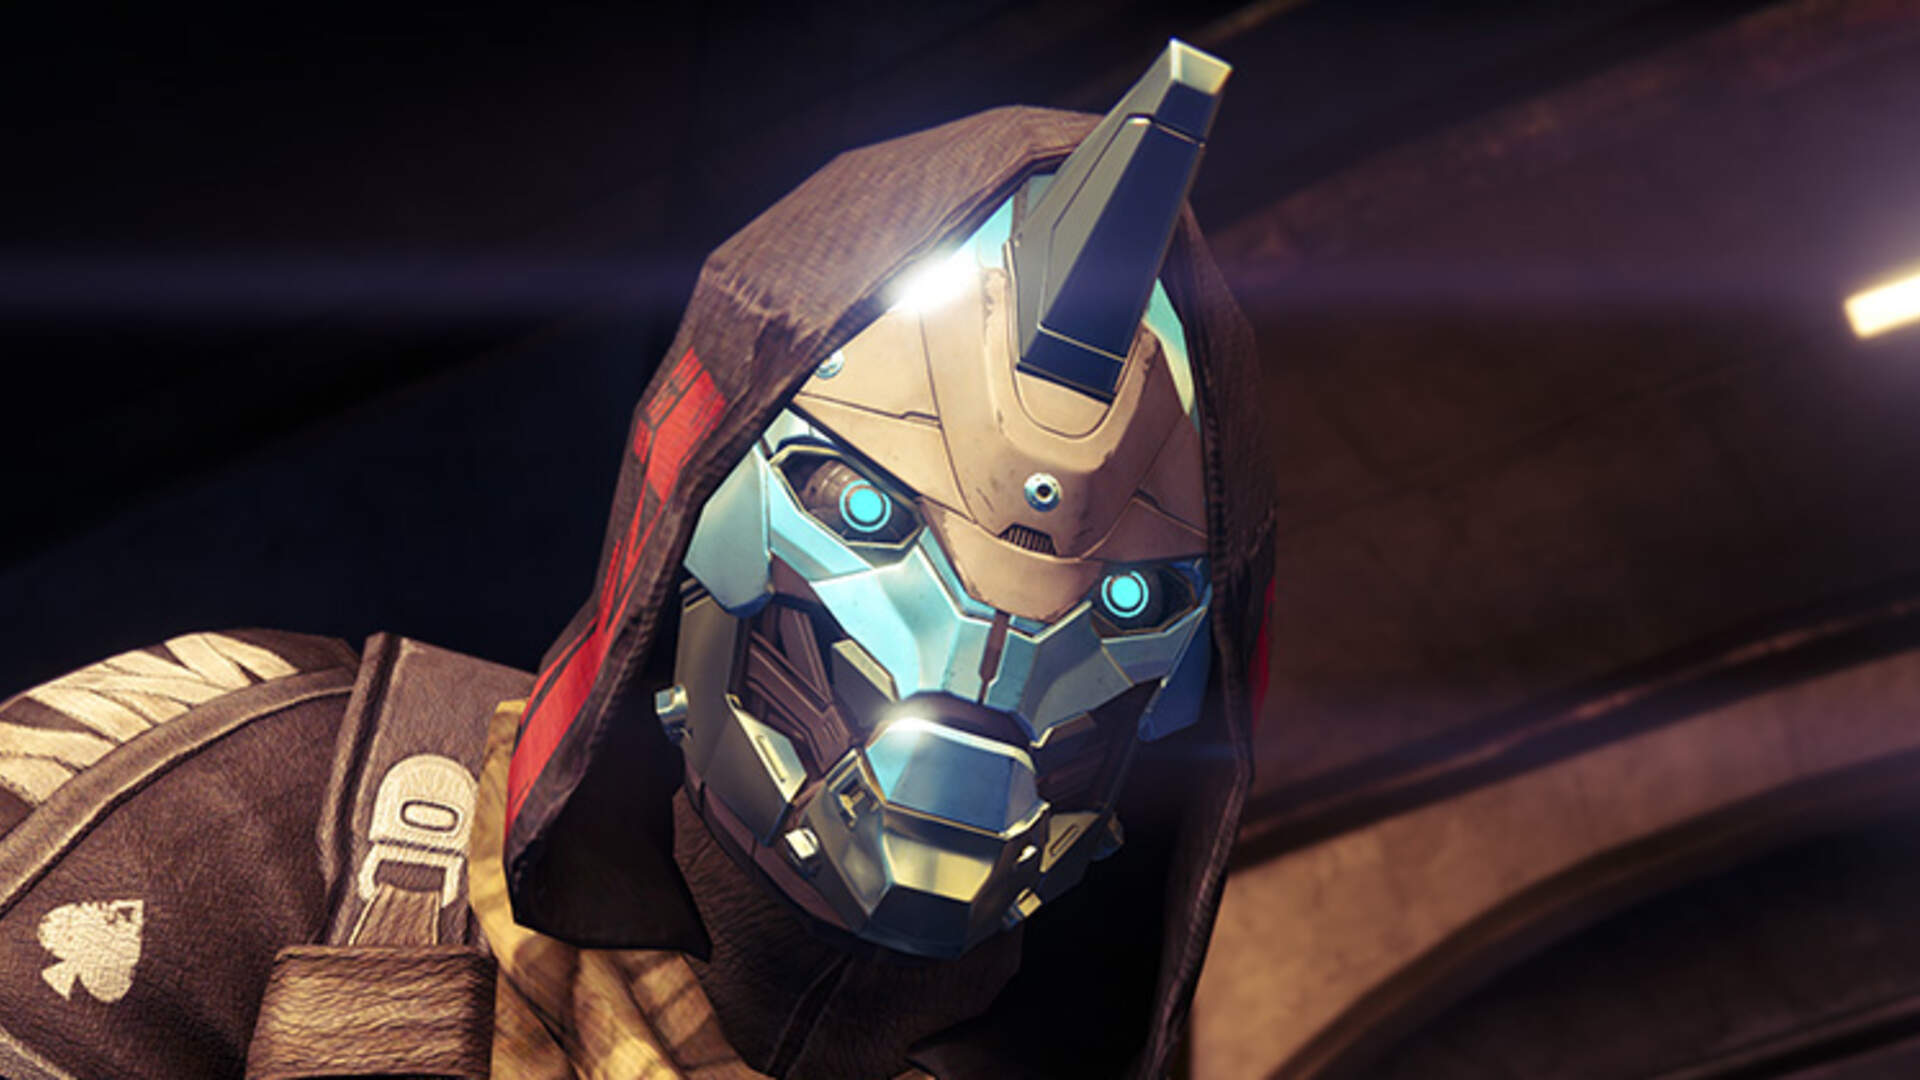 Destiny 2 is Live on PC and Blizzard is Throwing a Social Media Party for Cayde-6